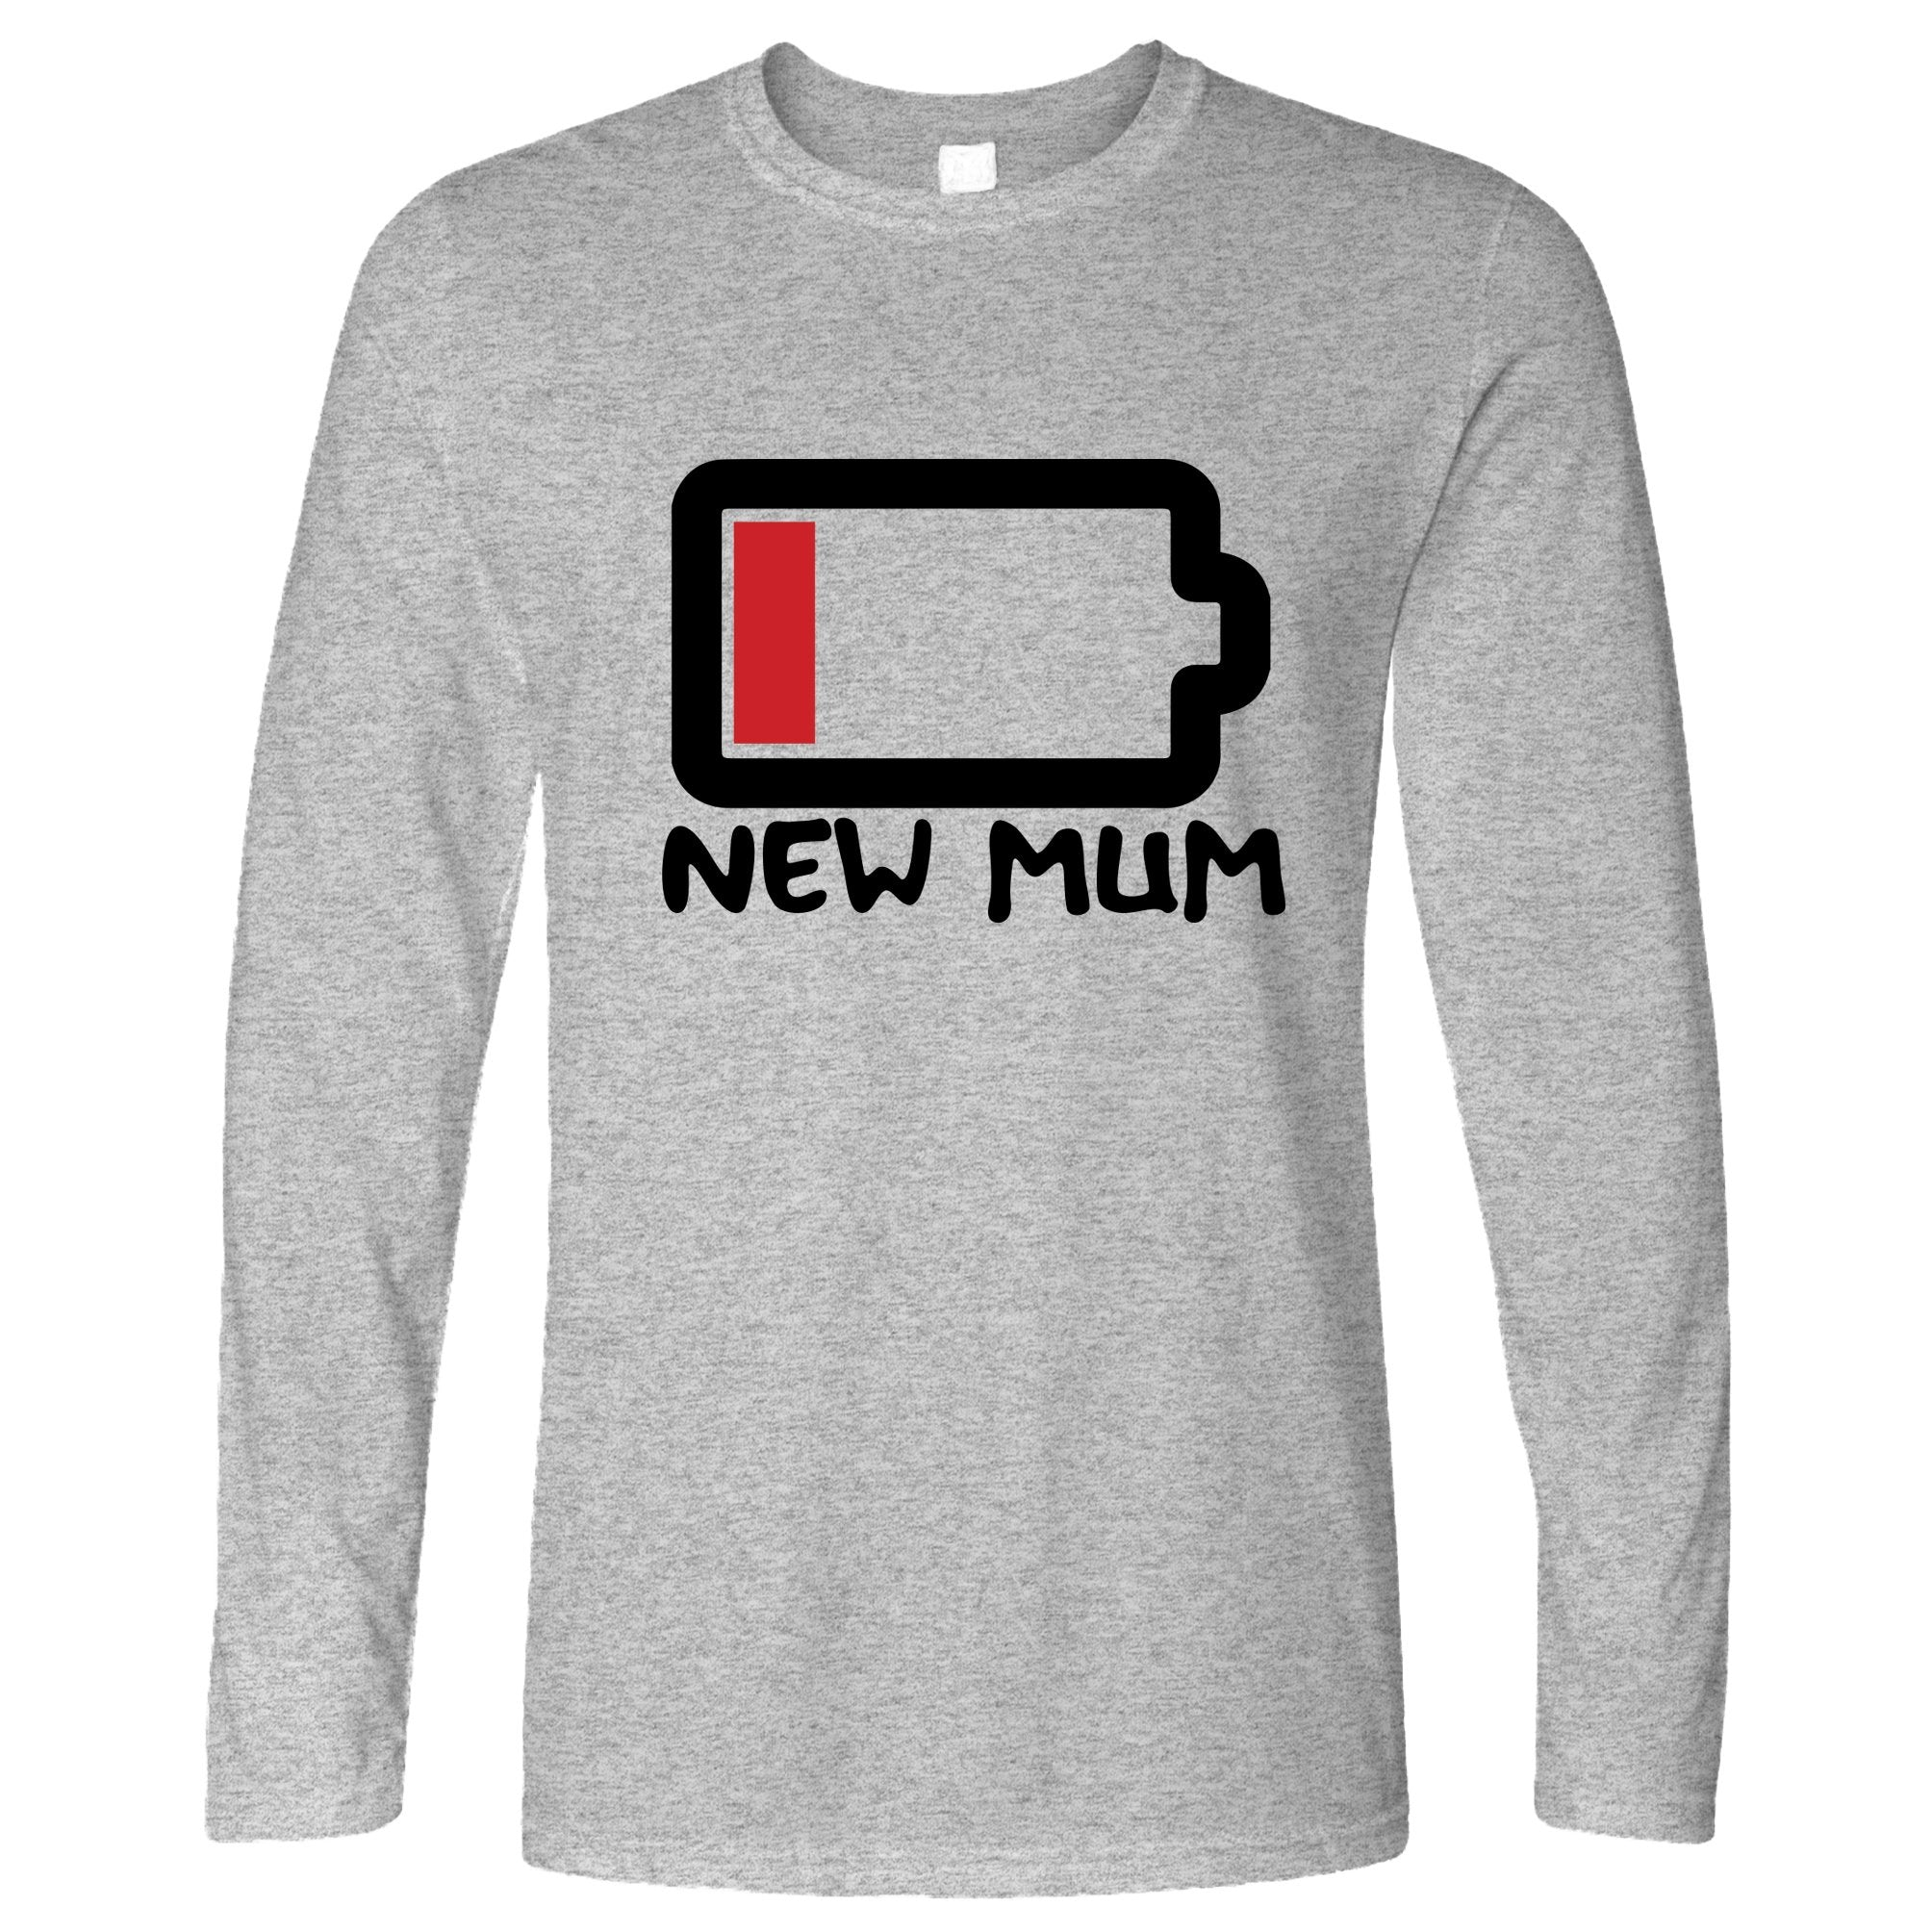 New Mum Long Sleeve Low Battery Remaining Novelty Joke T-Shirt